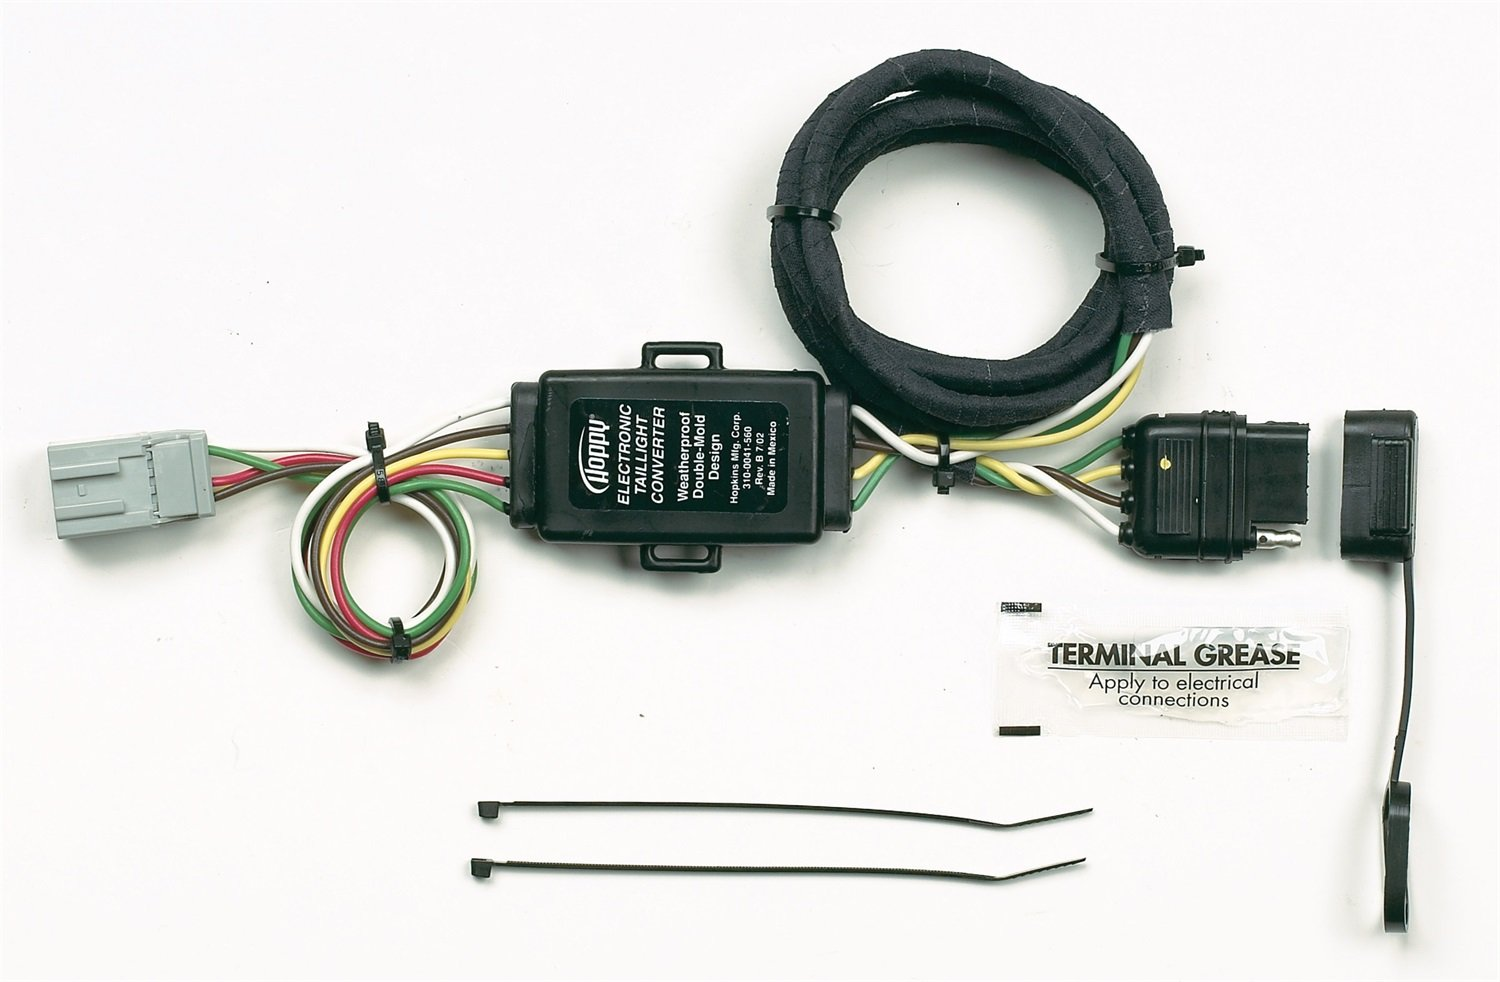 Amazon.com: Hopkins 43105 LiteMate Vehicle to Trailer Wiring Kit (Pico  6756PT) 1994-2002 Honda Accord, 1997-2006 CRV, 2003-2005 Element, 1995-2004  Odyssey, ...